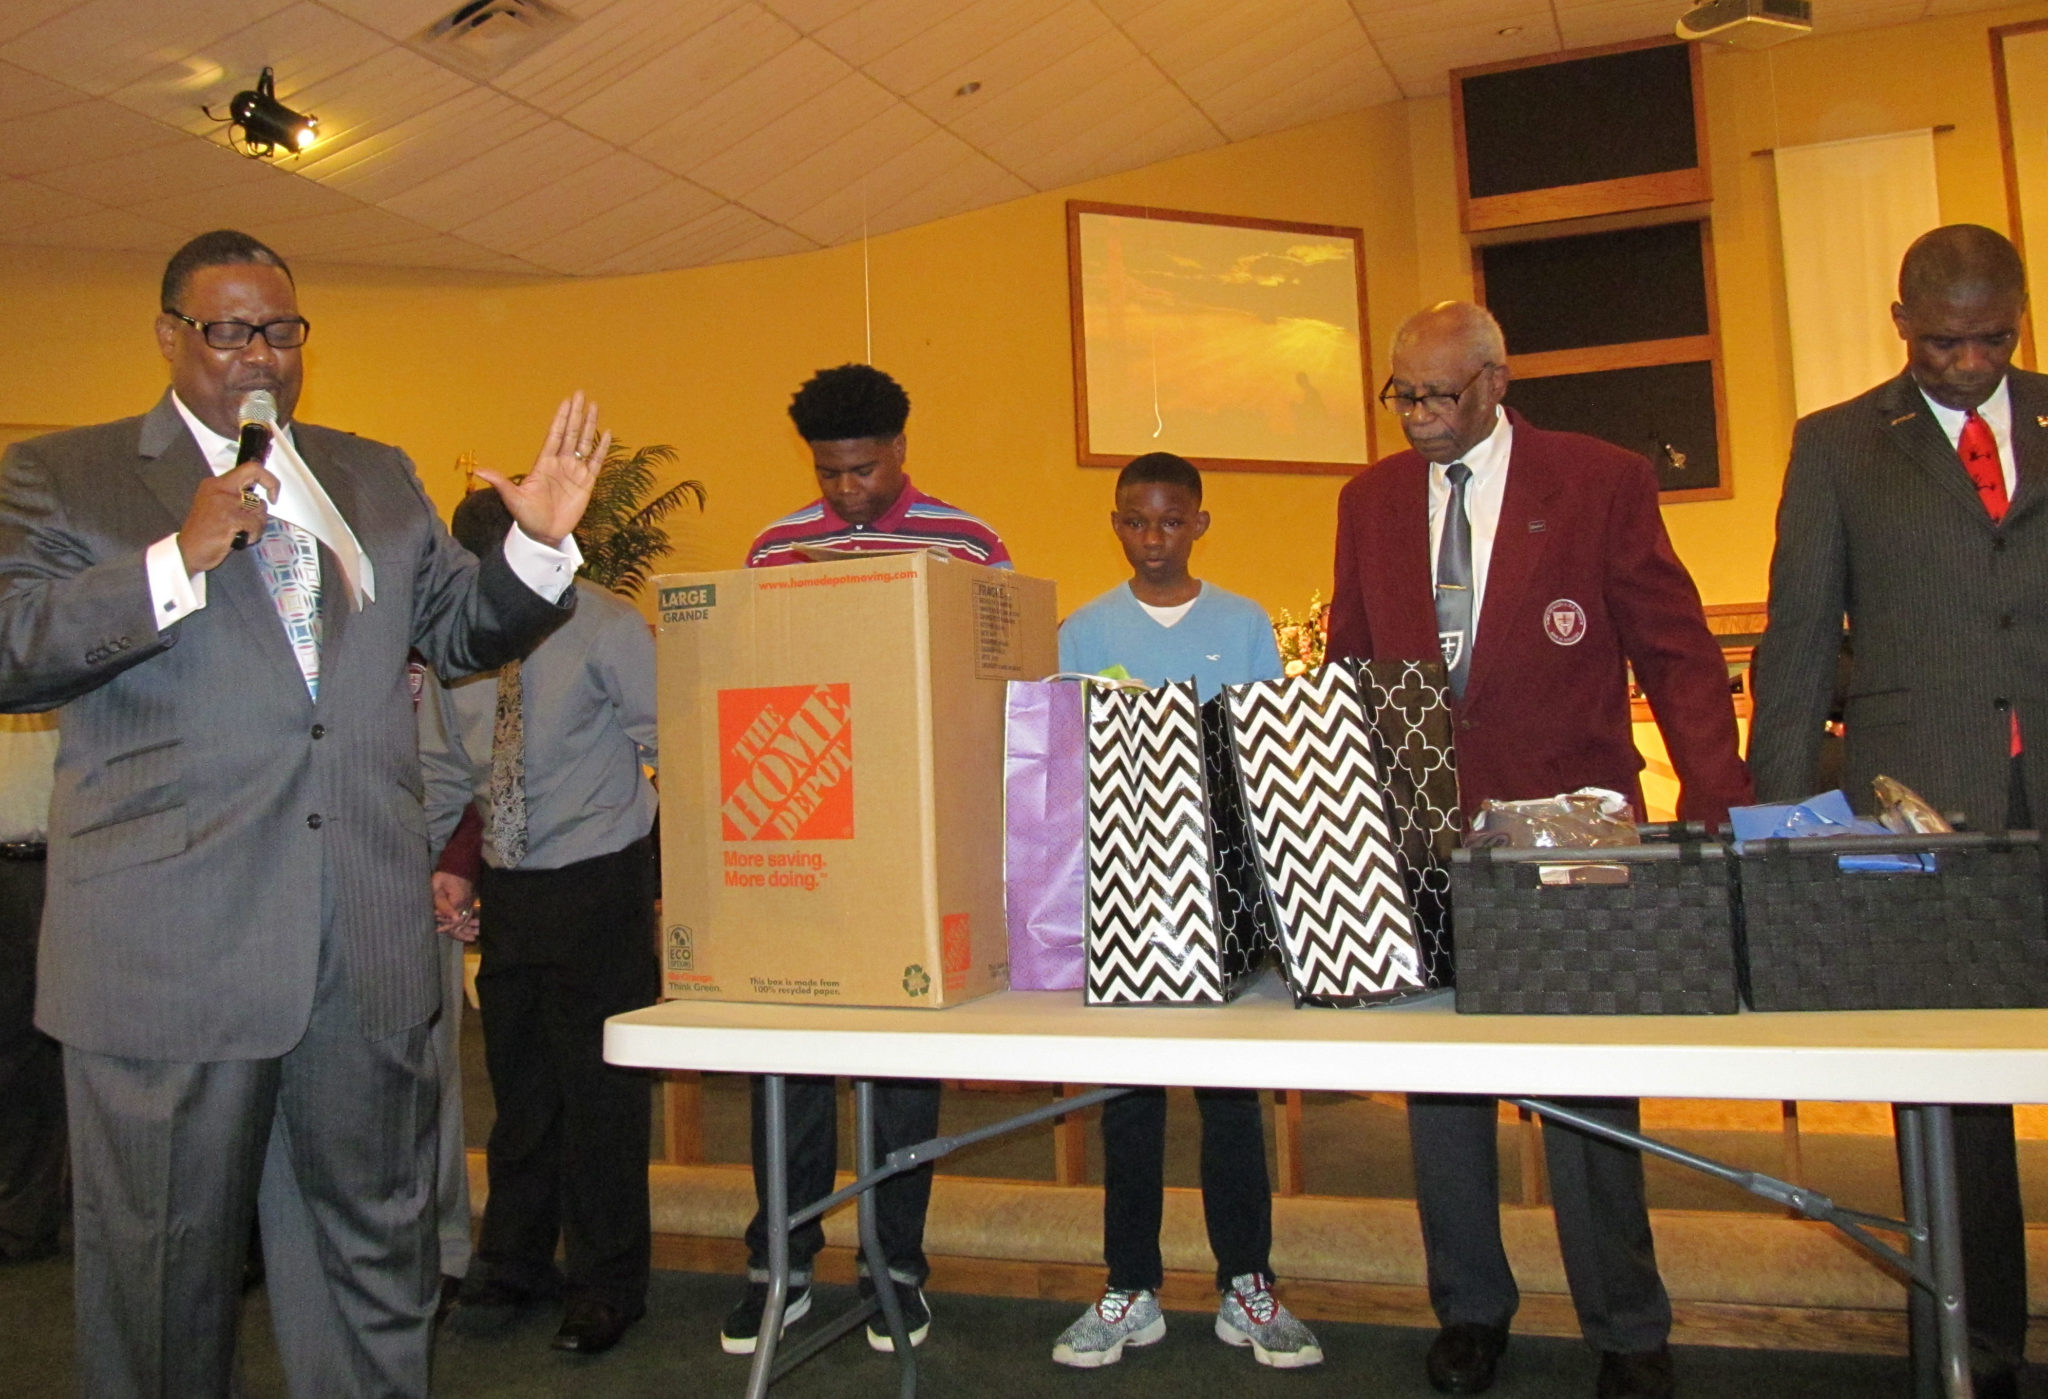 Shown praying for the program is Reverend Marvin C. Zander, II of St, Paul AME Missionary, students Alvin Marks, Jordan Wells, Sons of Allen Chairperson Joseph Coppock, Jr. and Tony Hill.